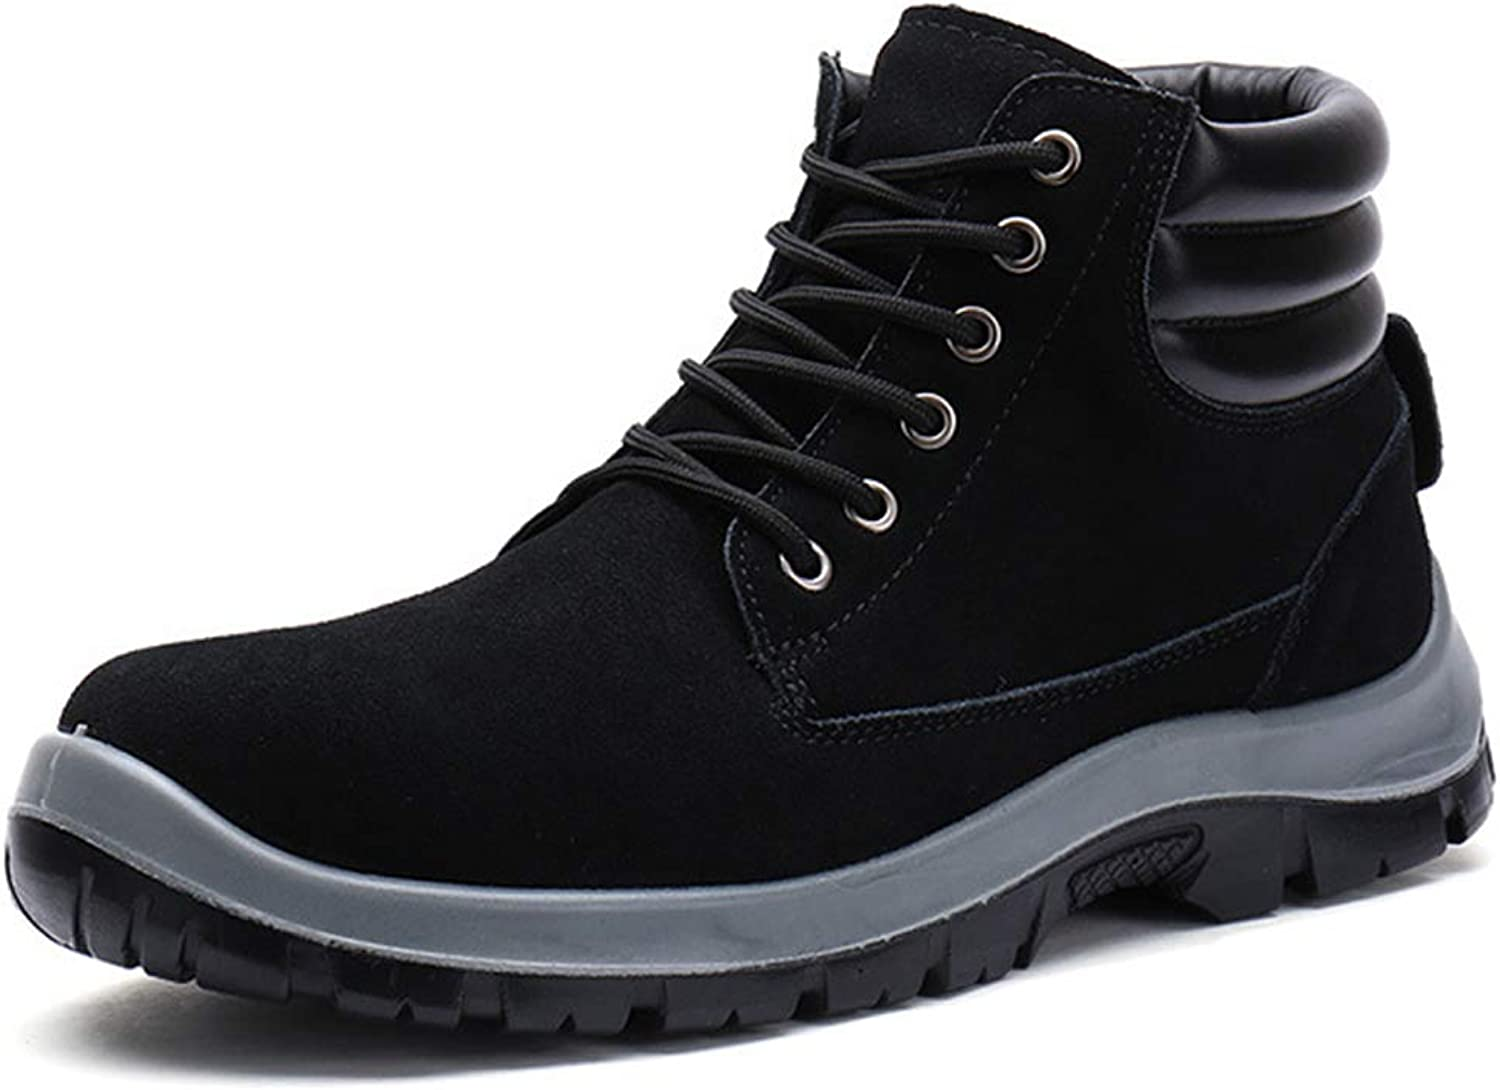 Men's Steel Safety Work shoes Fashion Ankle Boots Martin Boots Lace Up Derby shoes